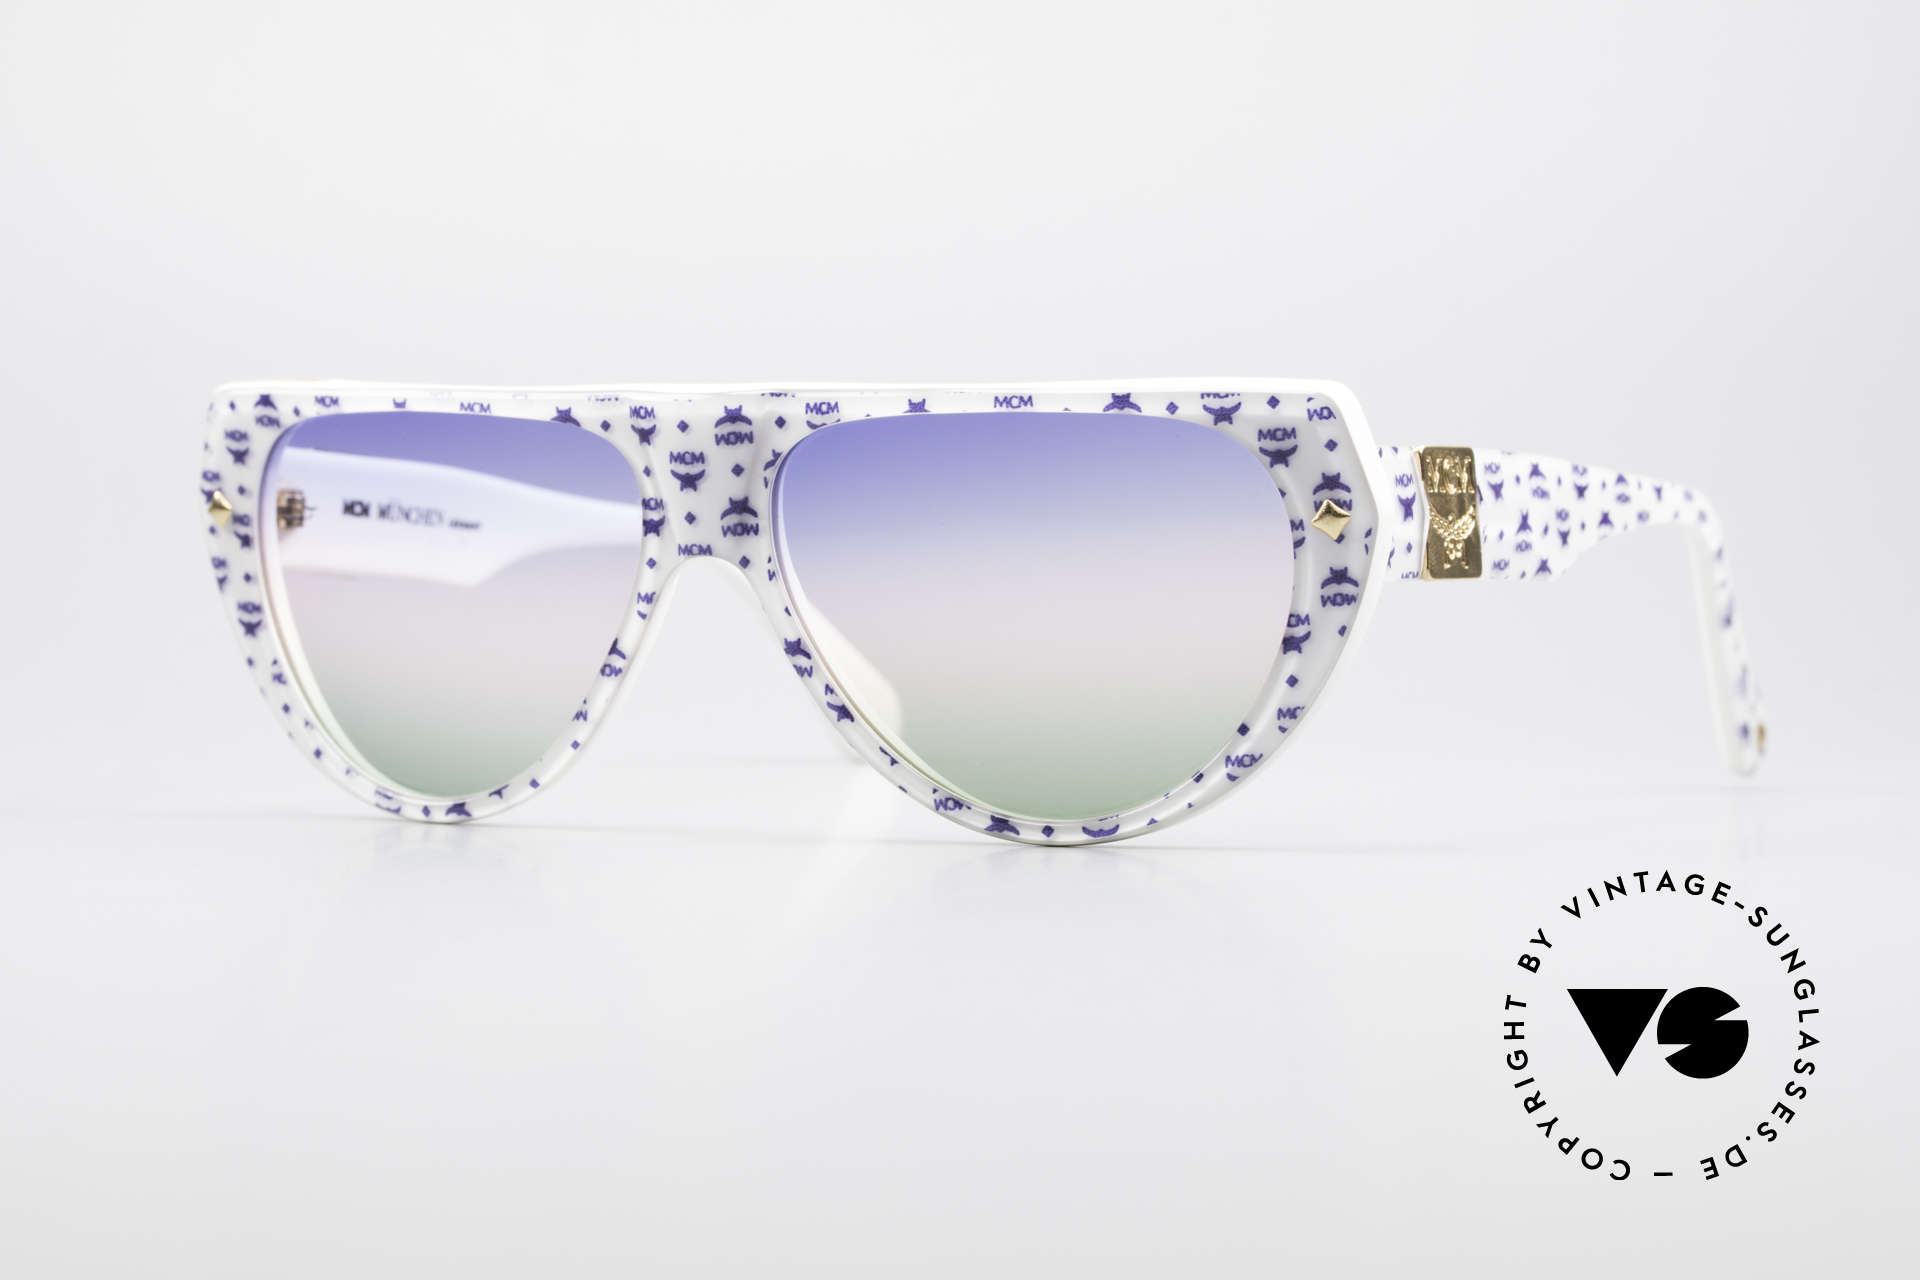 MCM München A1 Hip Hop Designer Sunglasses, ORIGINAL MCM = Mode Creation Munich (MCM), Made for Men and Women